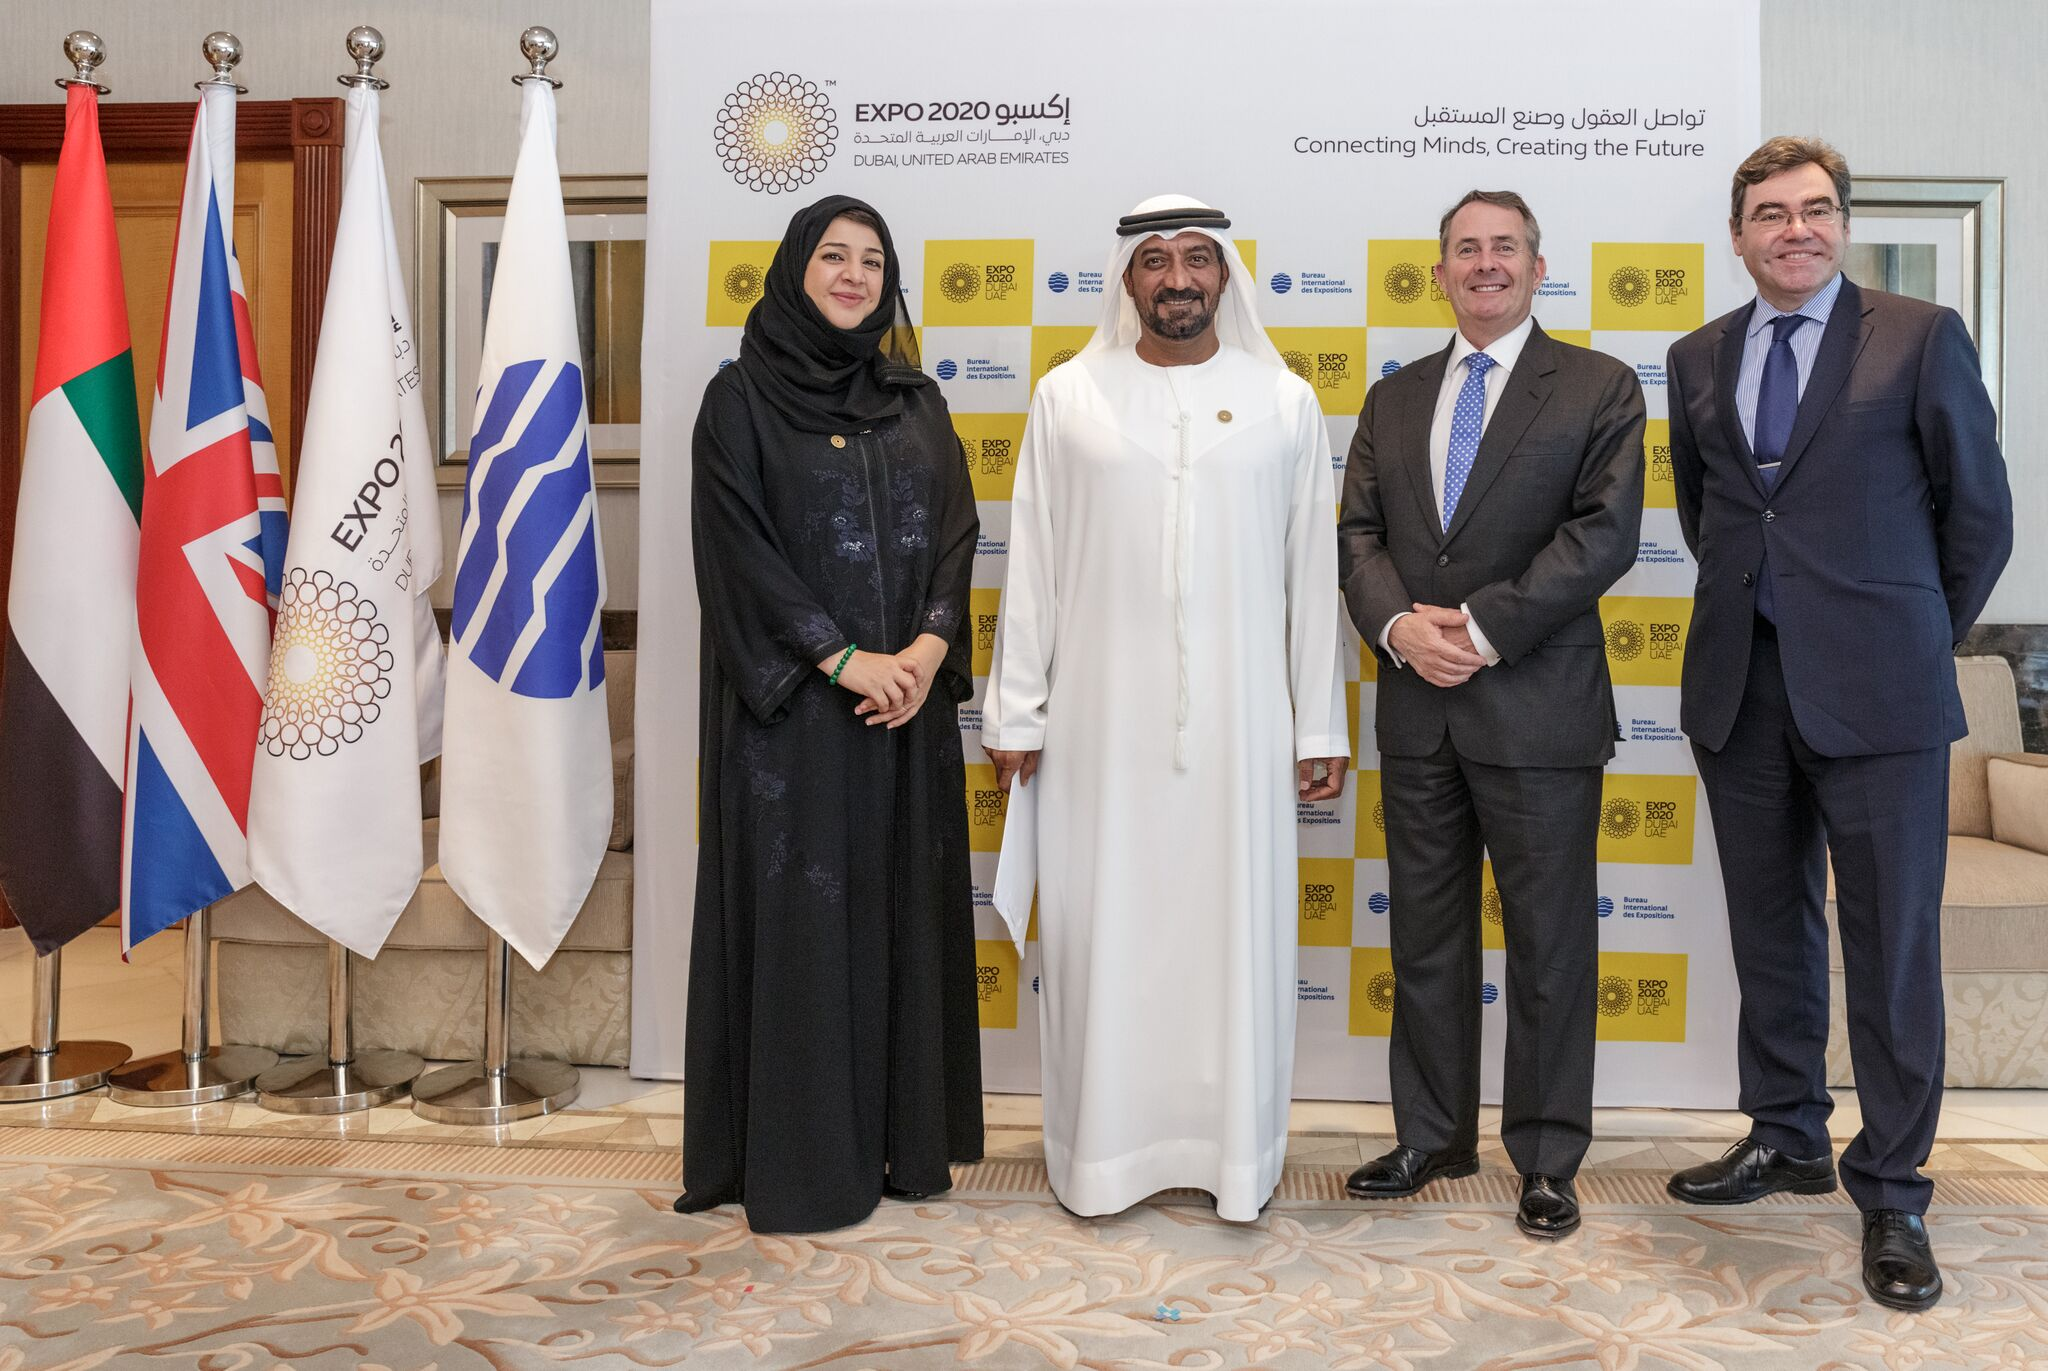 uk is ready to seize 'incredible' expo 2020 opportunity liam fox mp 1